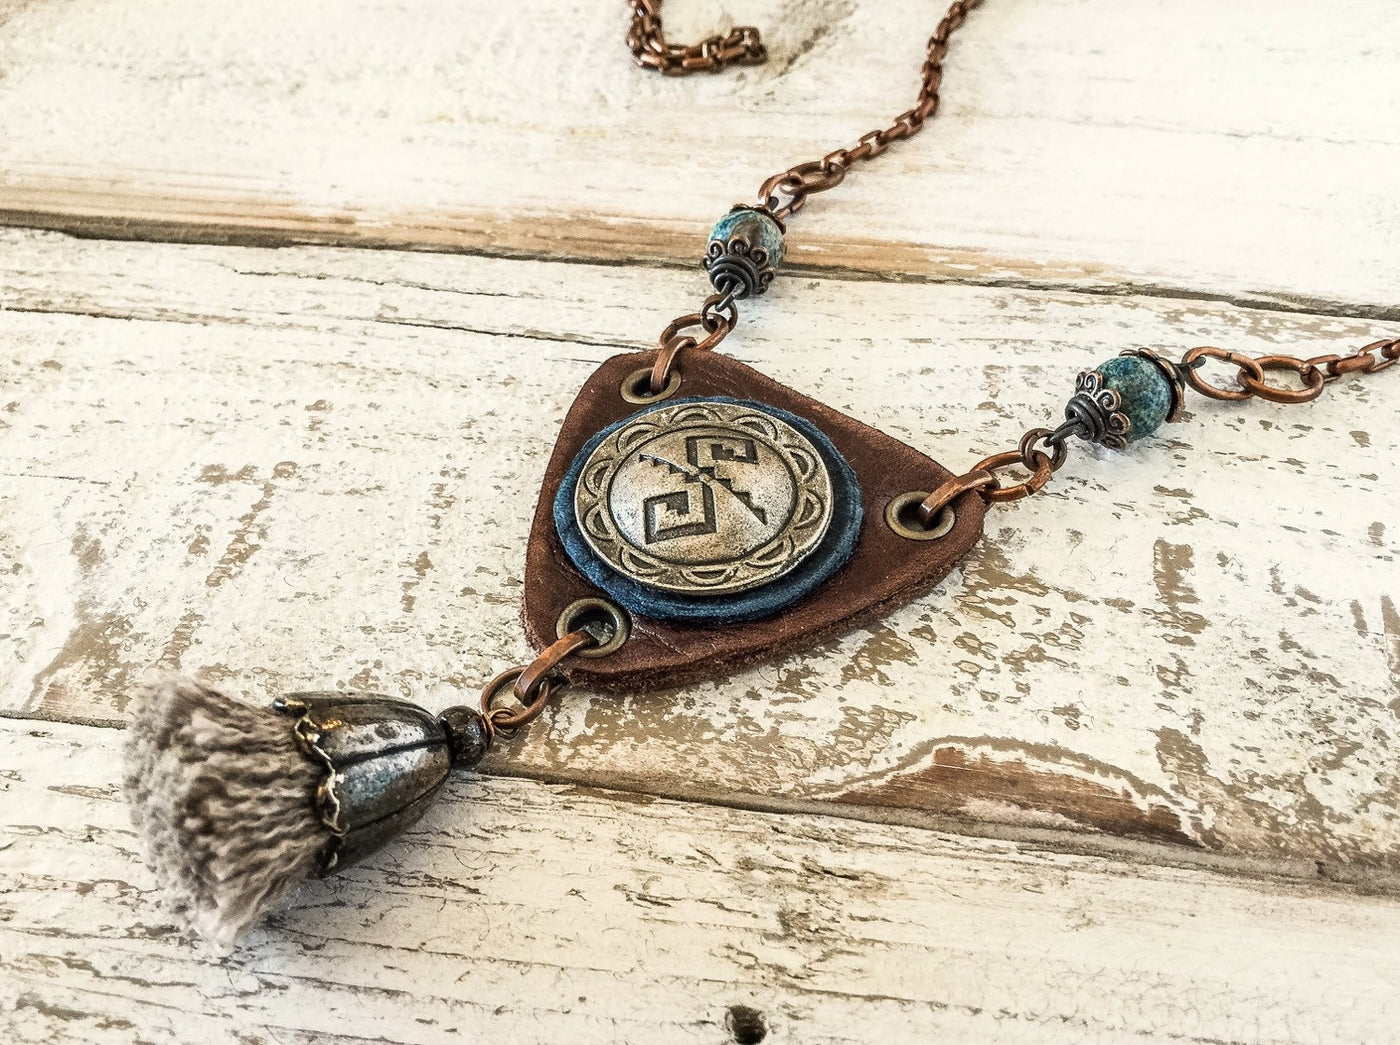 Ethnic Leather Boho Gypsy Rustic Earthy Tassel Blue Jasper Long Necklace, Southwestern Vintage Triangle Engraved Metal Distressed Jewelry